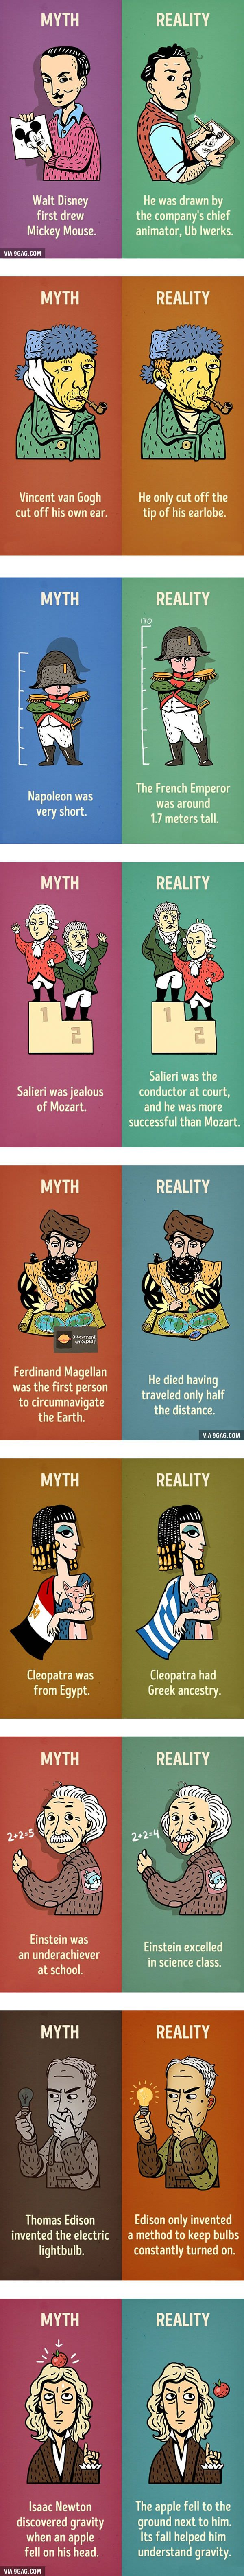 Nine historical myths we need to stop believing - 9GAG